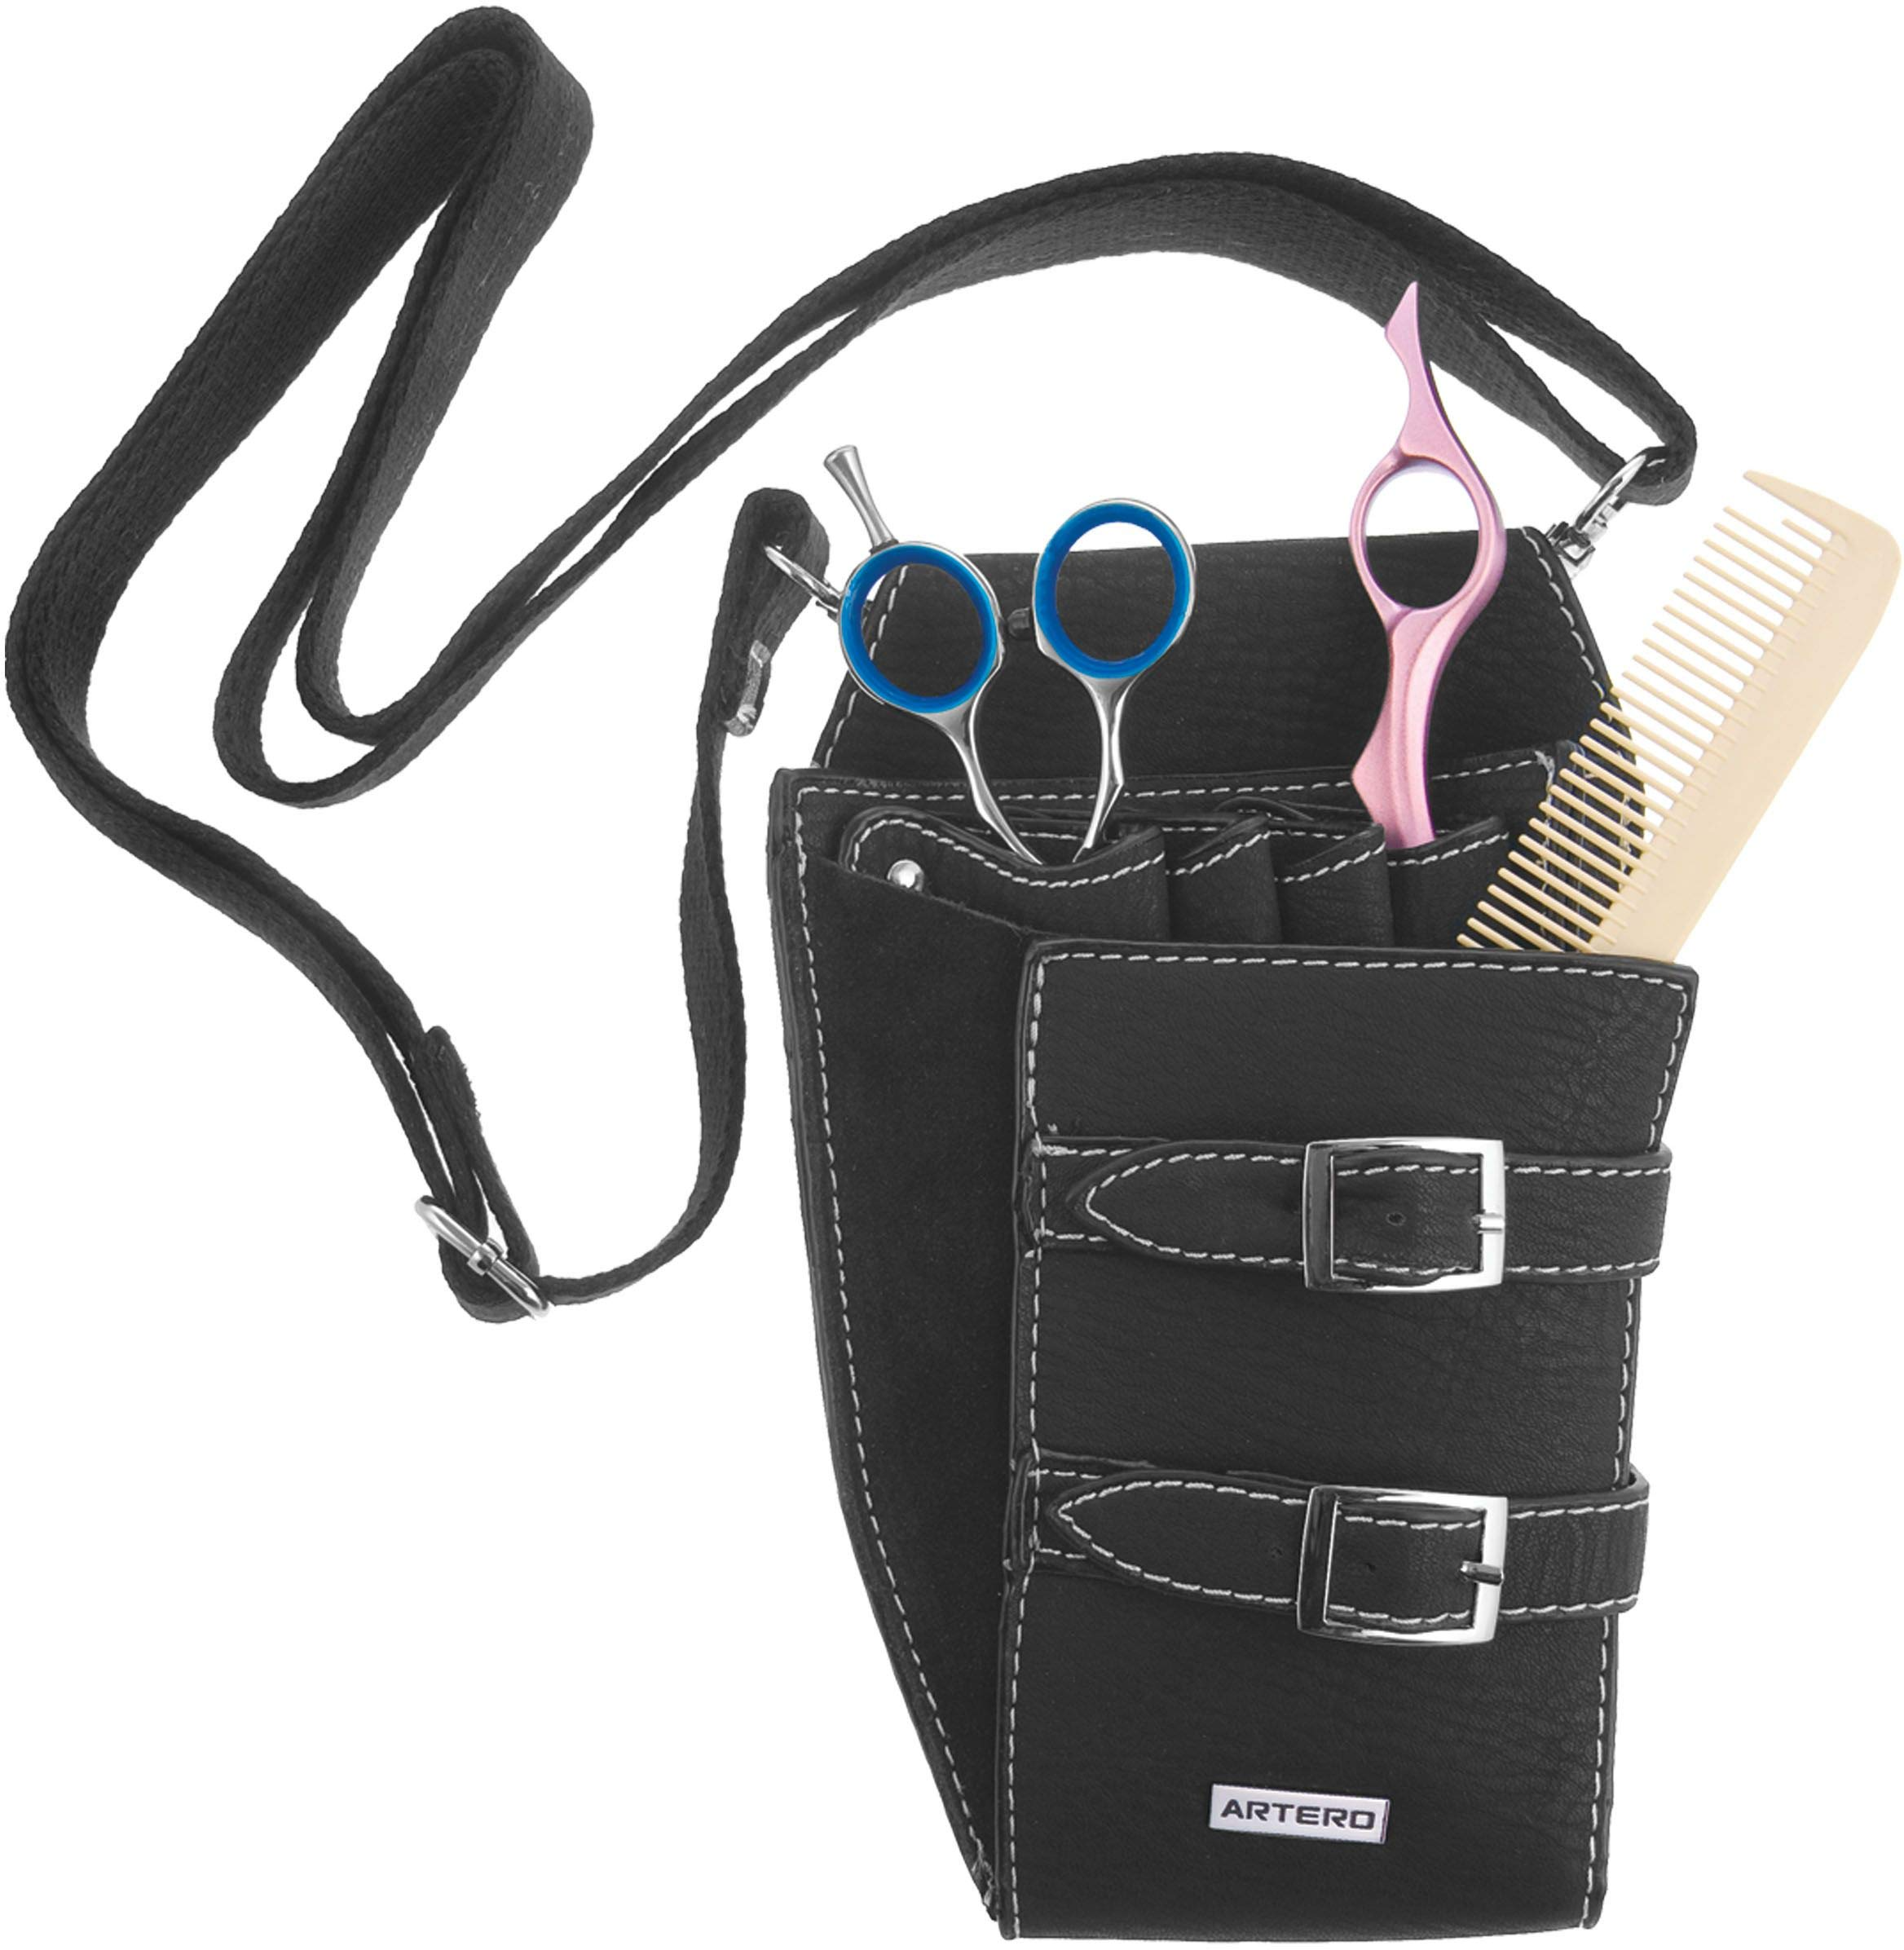 Artero Salon Professional Tool Holster by Artero